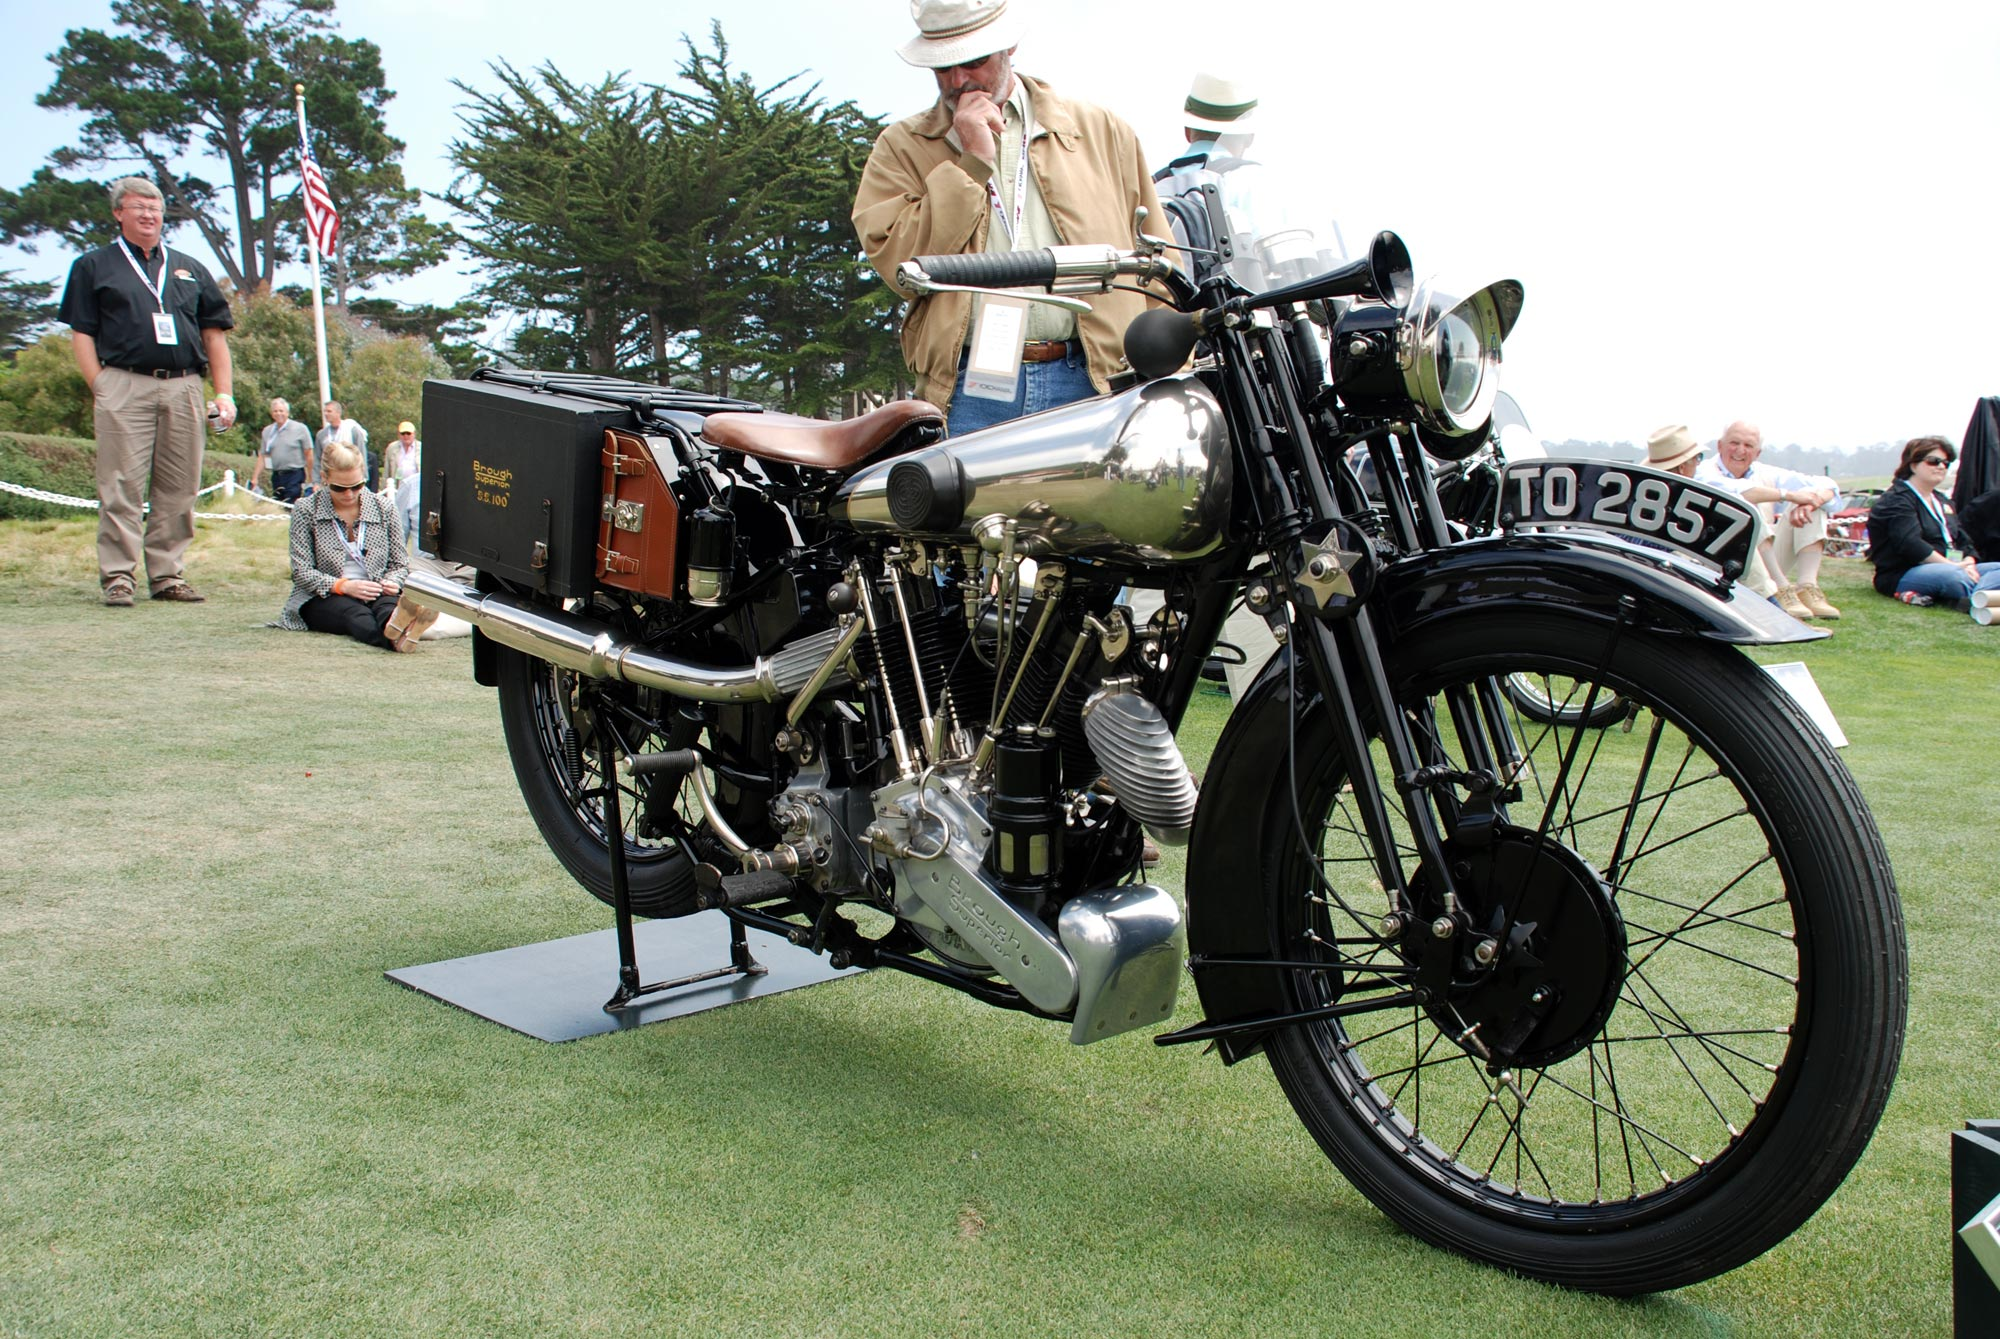 Brough superior ss photo - 2